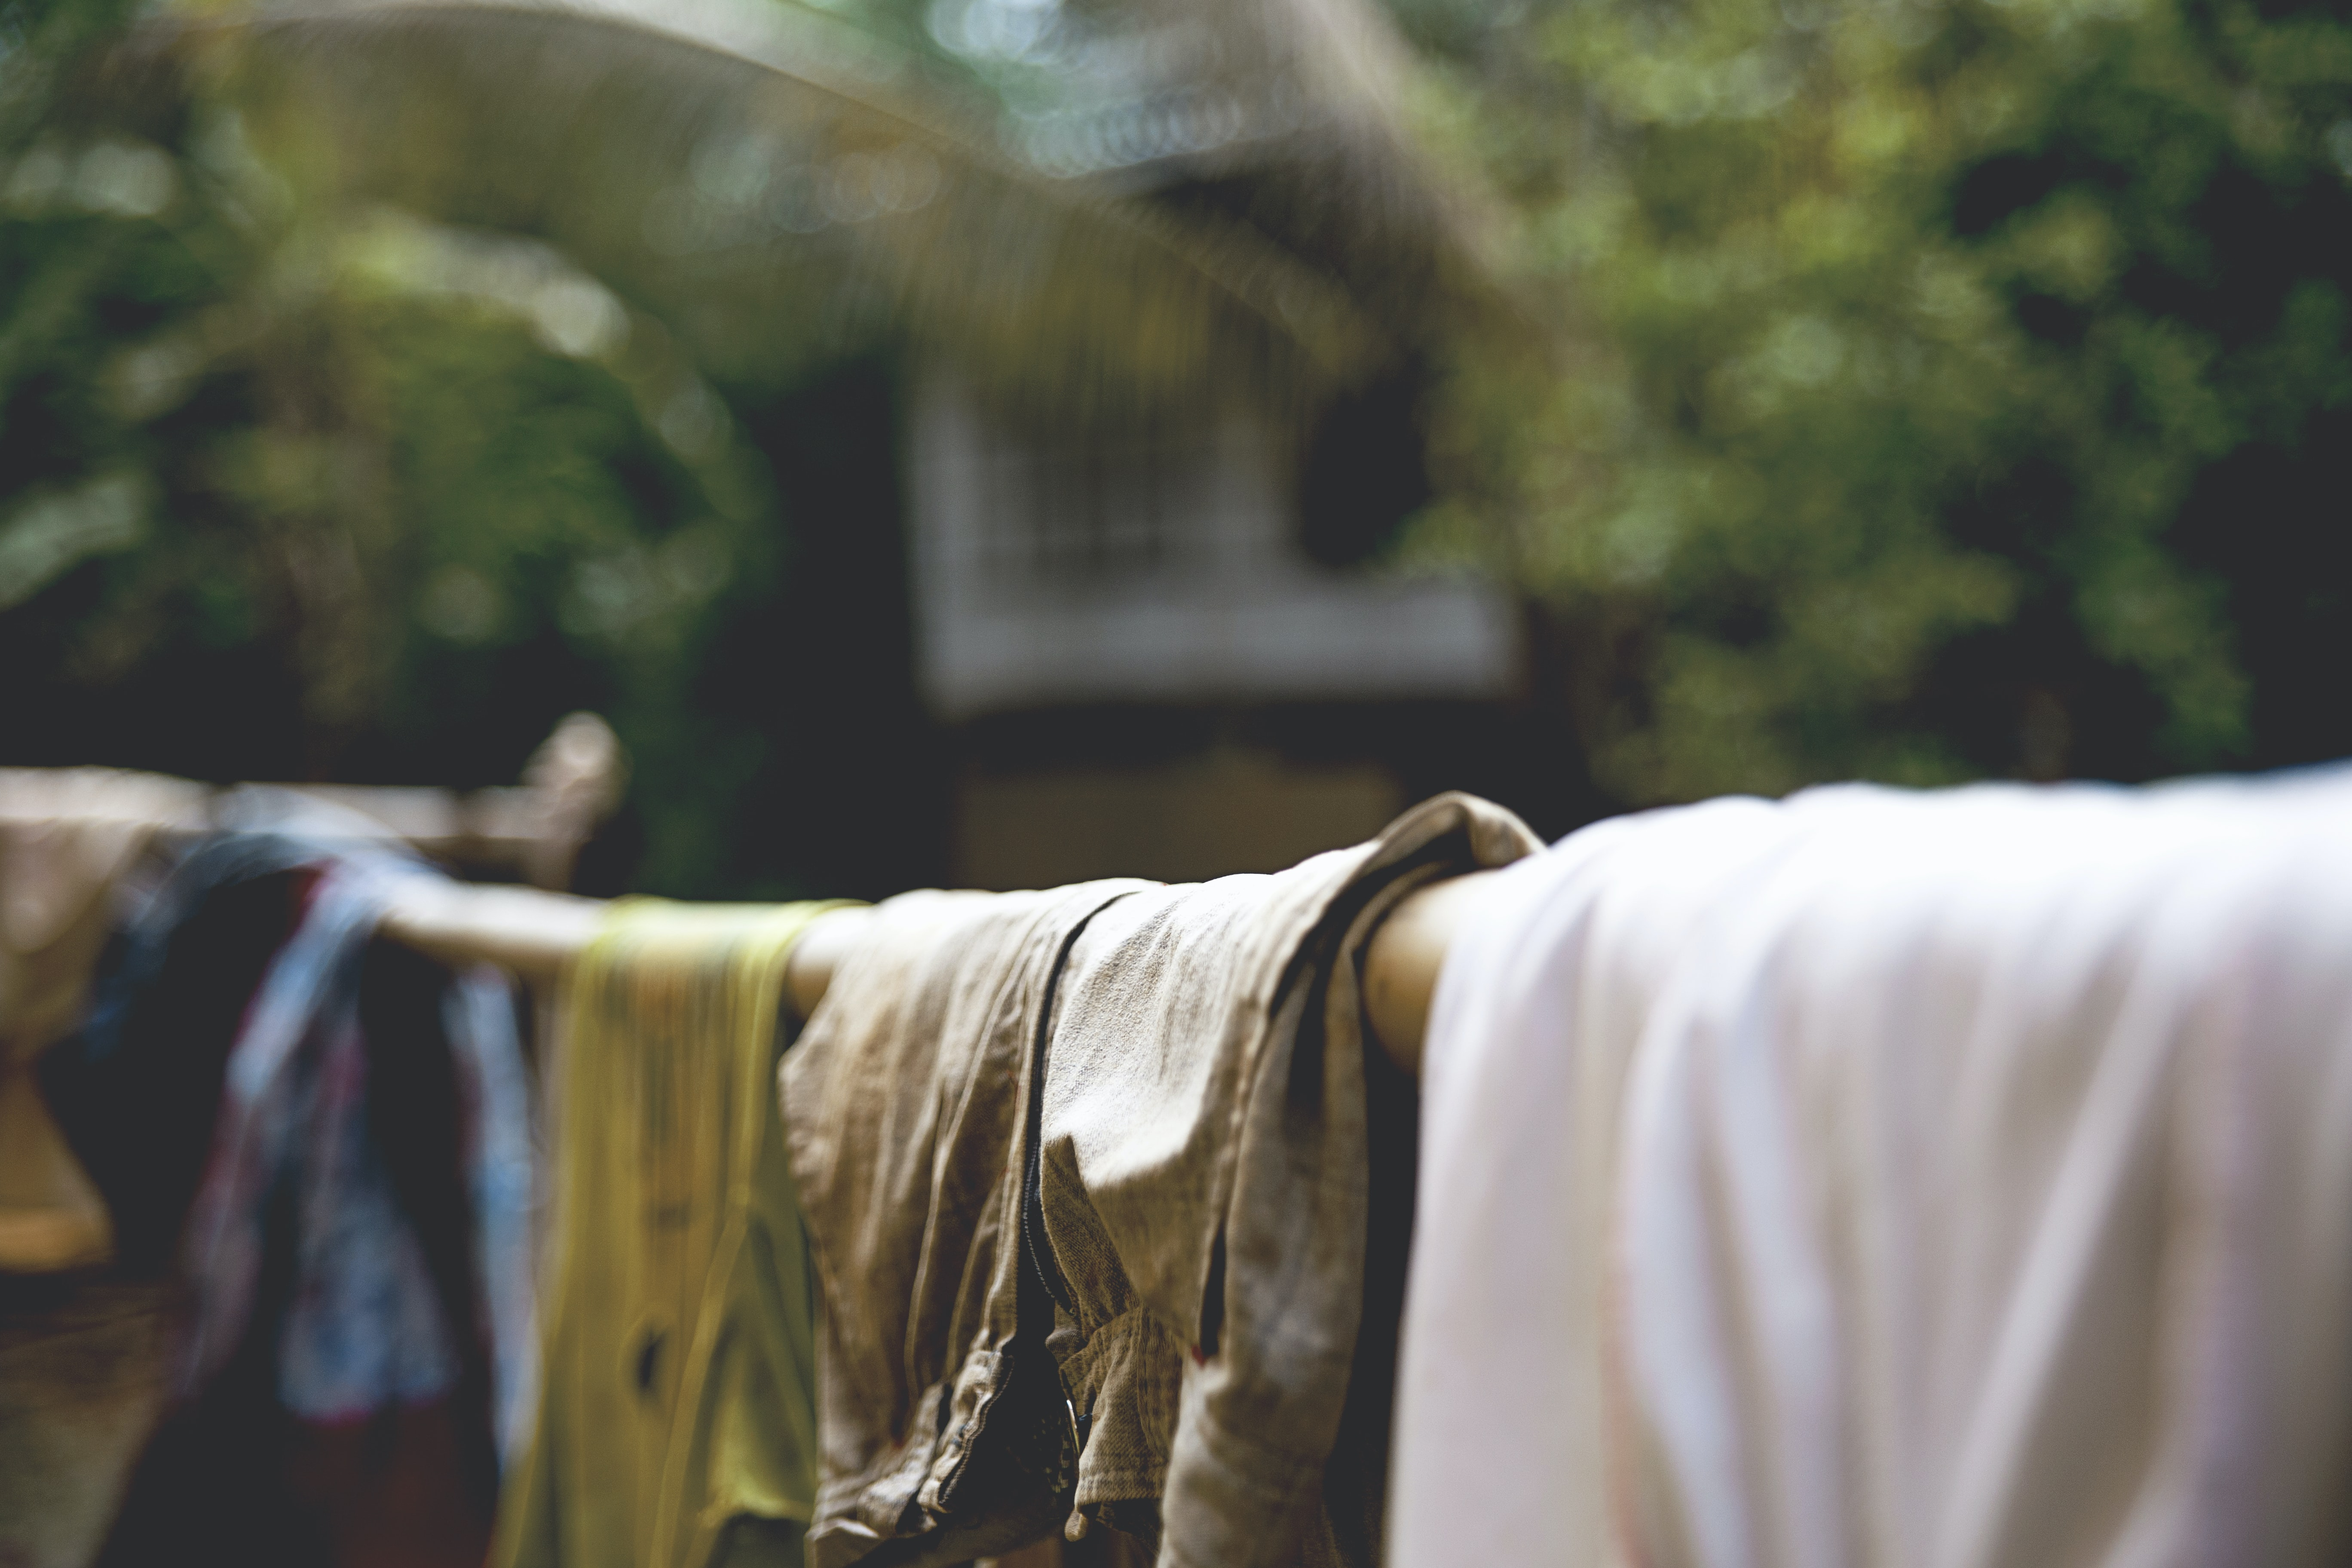 Clothing drying on a bamboo pole in front of a building at Noh Bo Academy